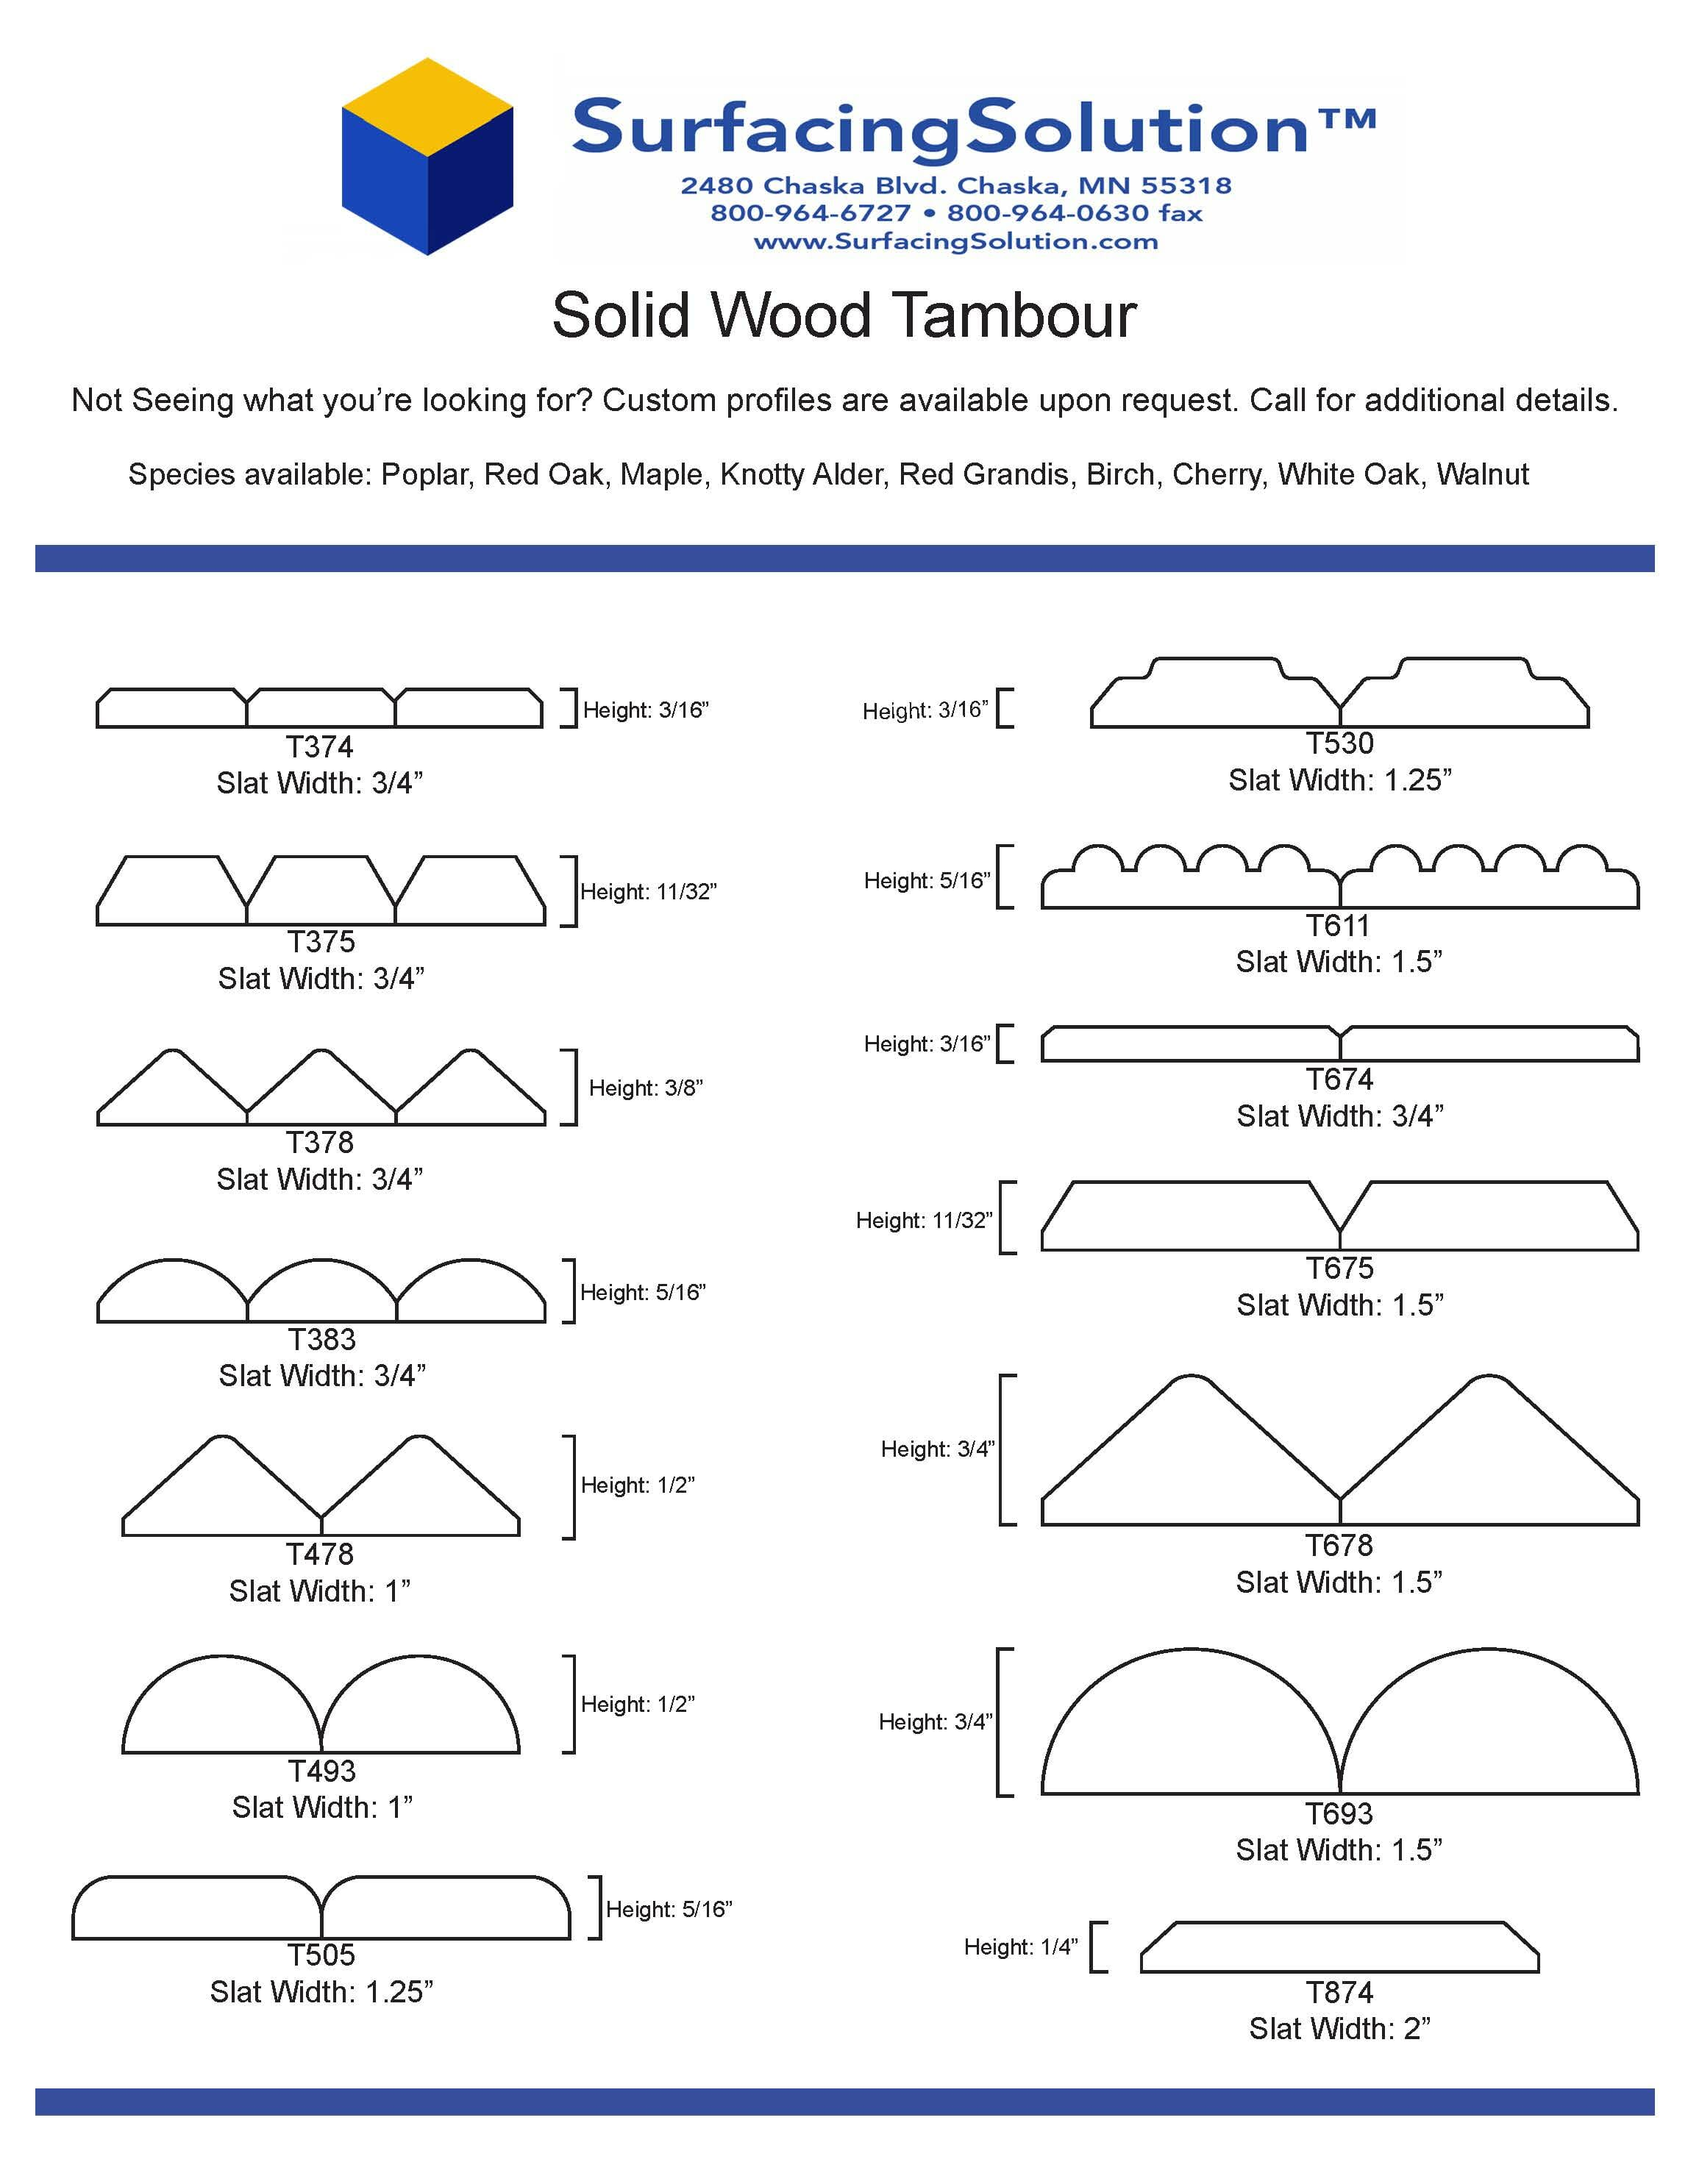 Solid Wood Tambour panels for Walls, Ceilings, wainscots, pole wraps and more!